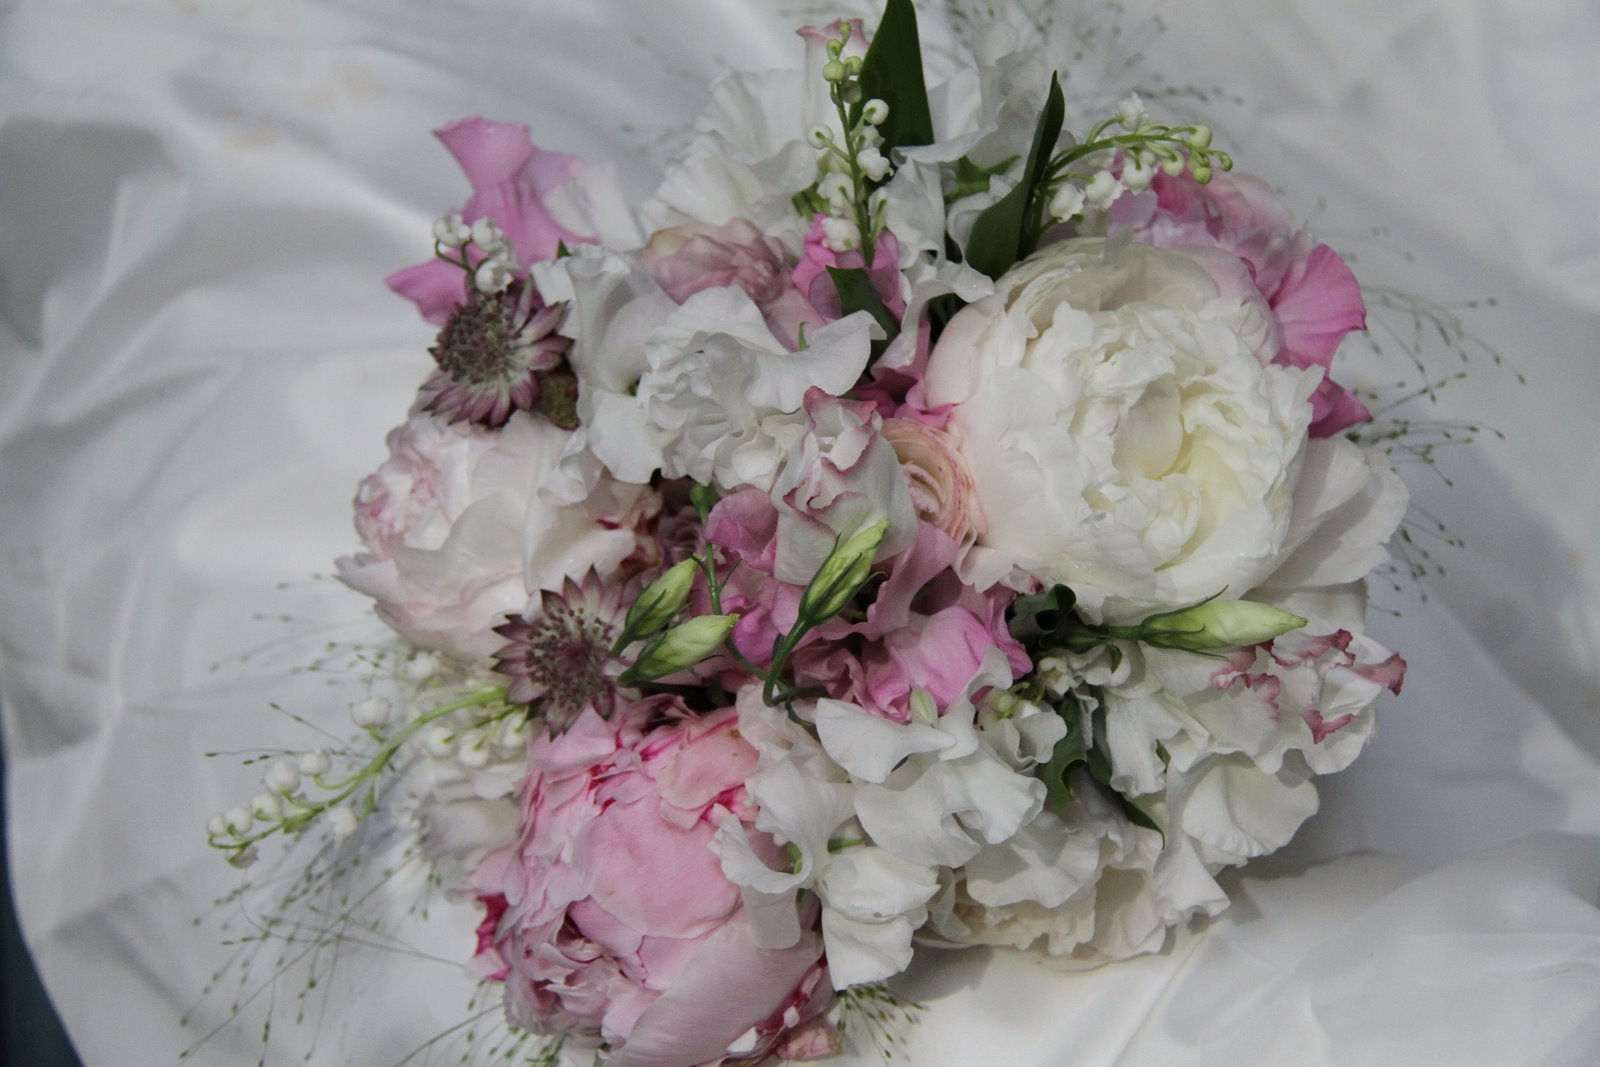 Lily Of The Valley Wedding Bouquet: The Flower Magician: Sweet Peas, Peonies And Lily Of The